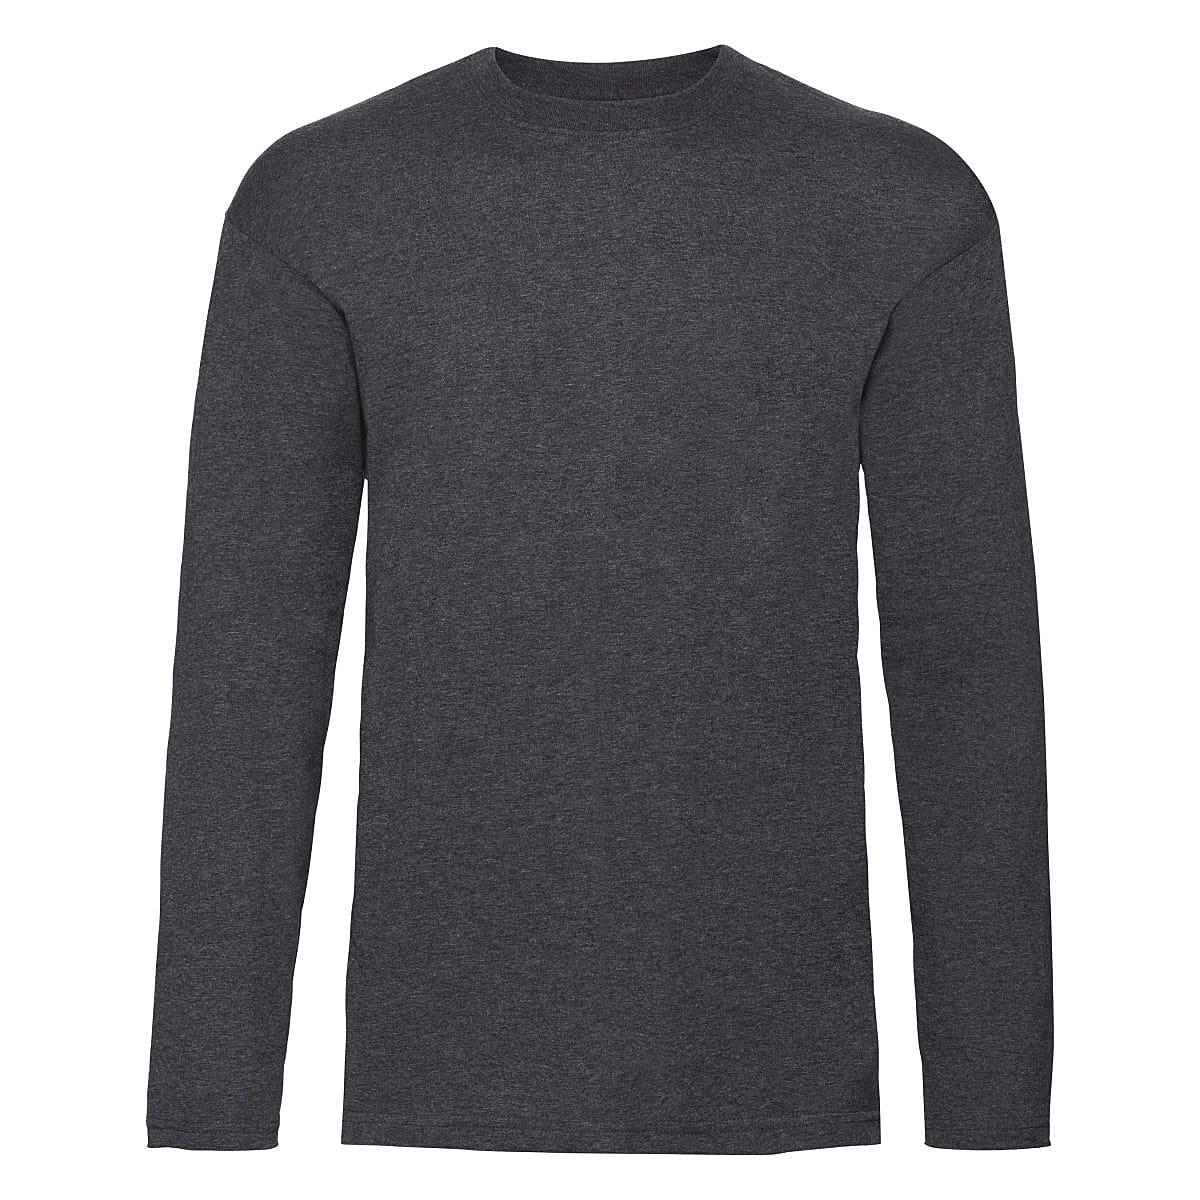 Fruit Of The Loom Valueweight Long-Sleeve T-Shirt in Dark Heather (Product Code: 61038)